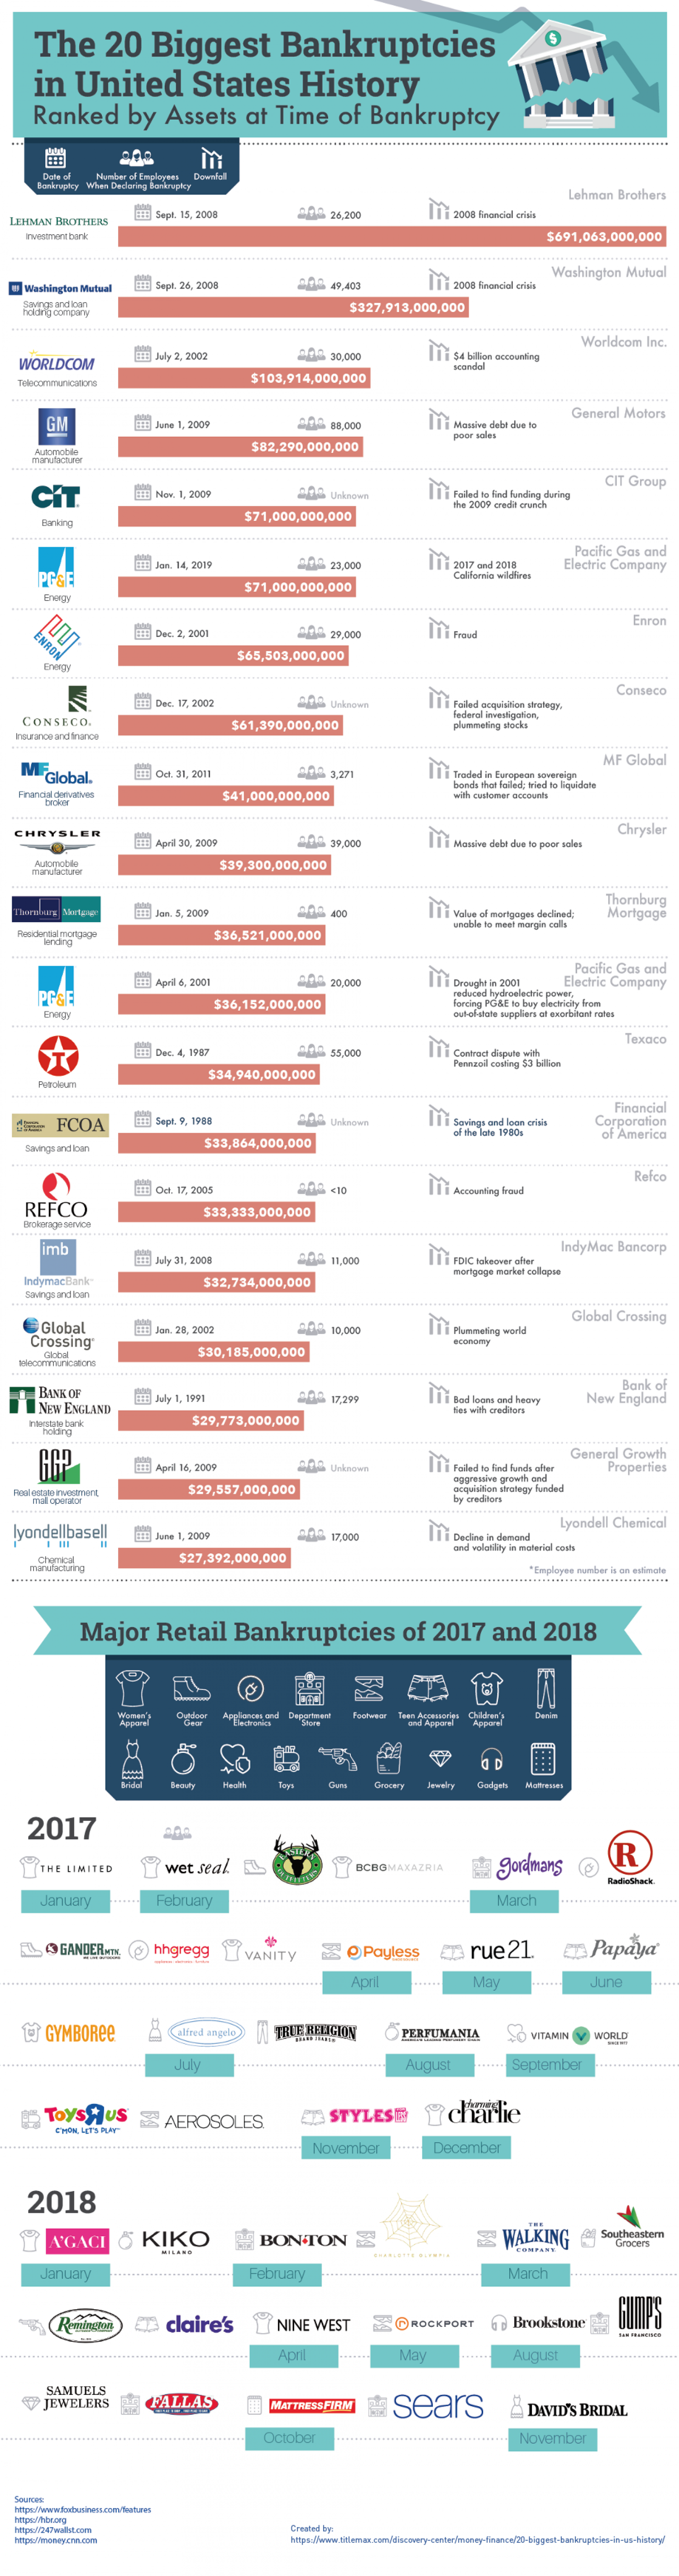 The 20 Biggest Bankruptcies in United States History Infographic